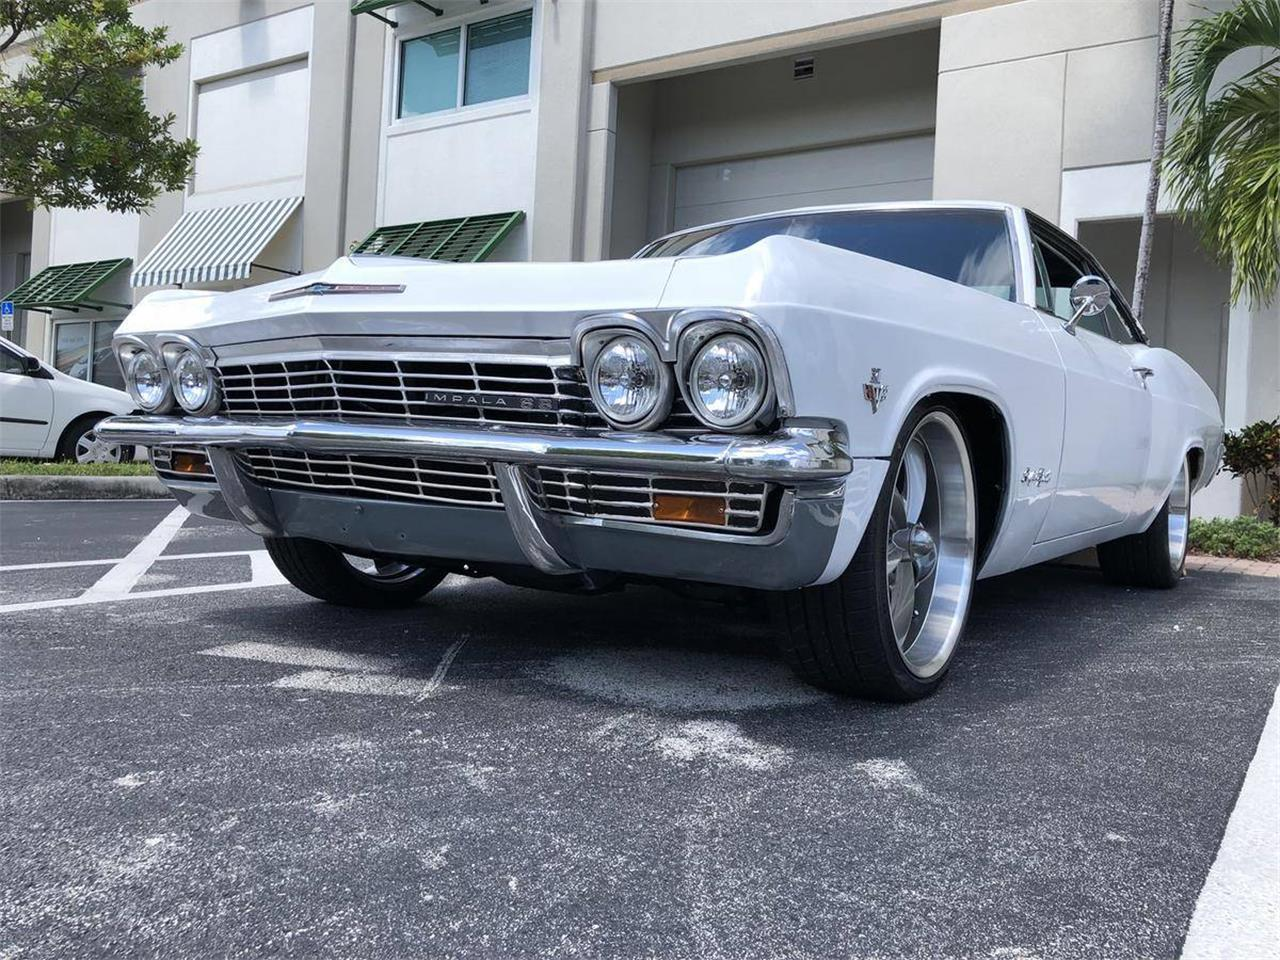 Large Picture of 1965 Impala SS located in Florida - $20,000.00 Offered by a Private Seller - NNRP